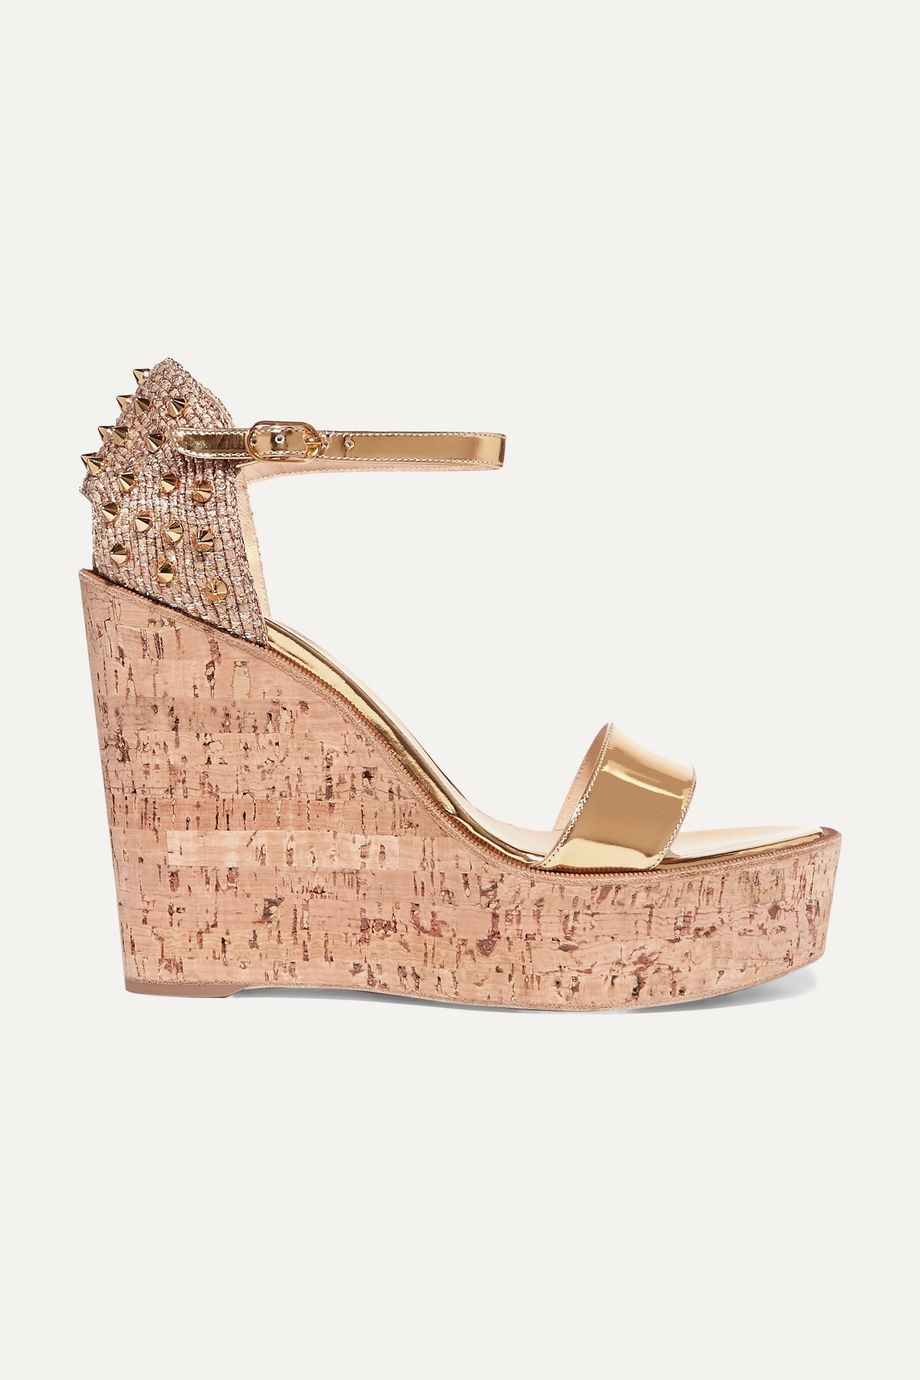 Christian Louboutin Bellamonica 120 spiked metallic jute and leather wedge sandals